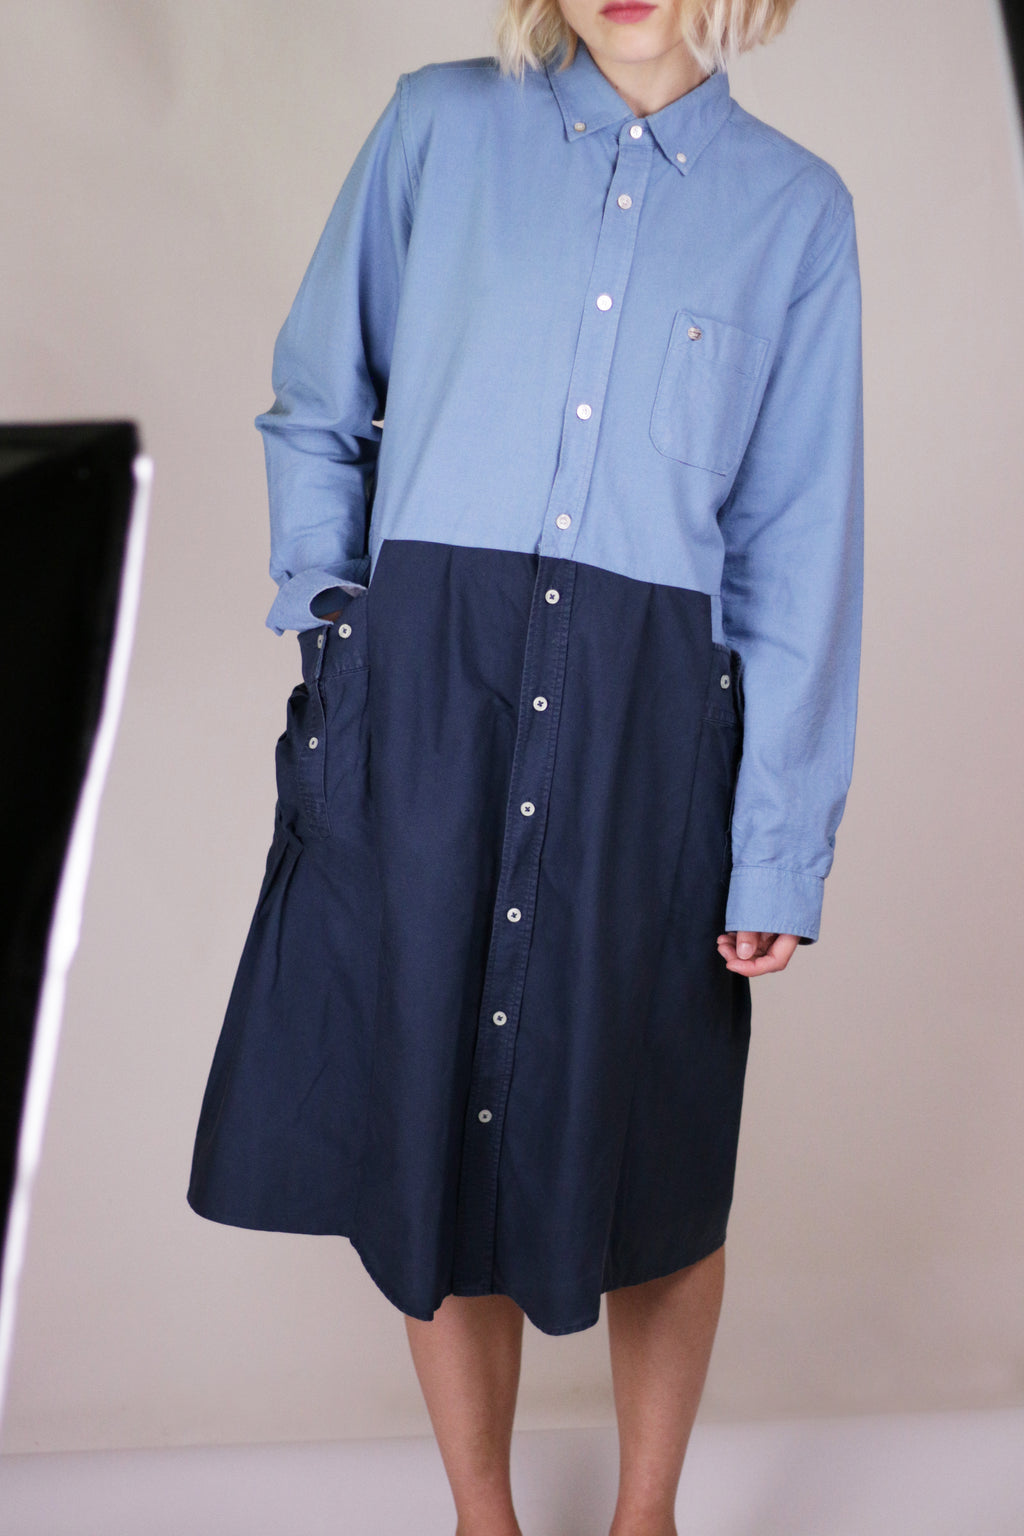 McBEAL dress blue